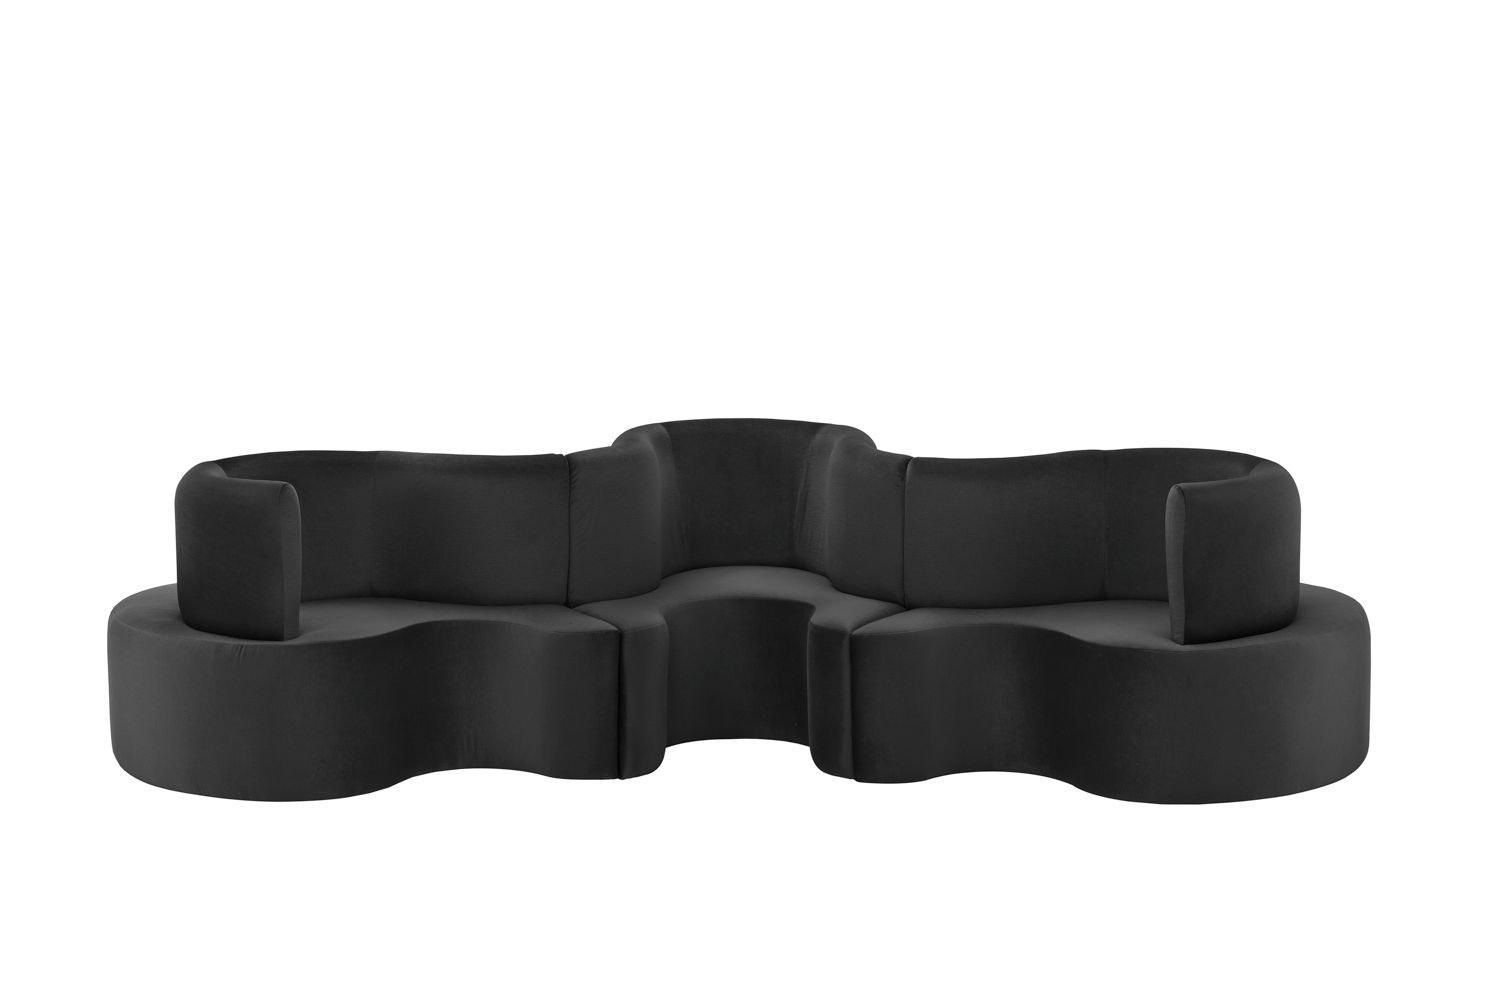 Cloverleaf Sofa - 3 Units by Verner Panton for Verpan